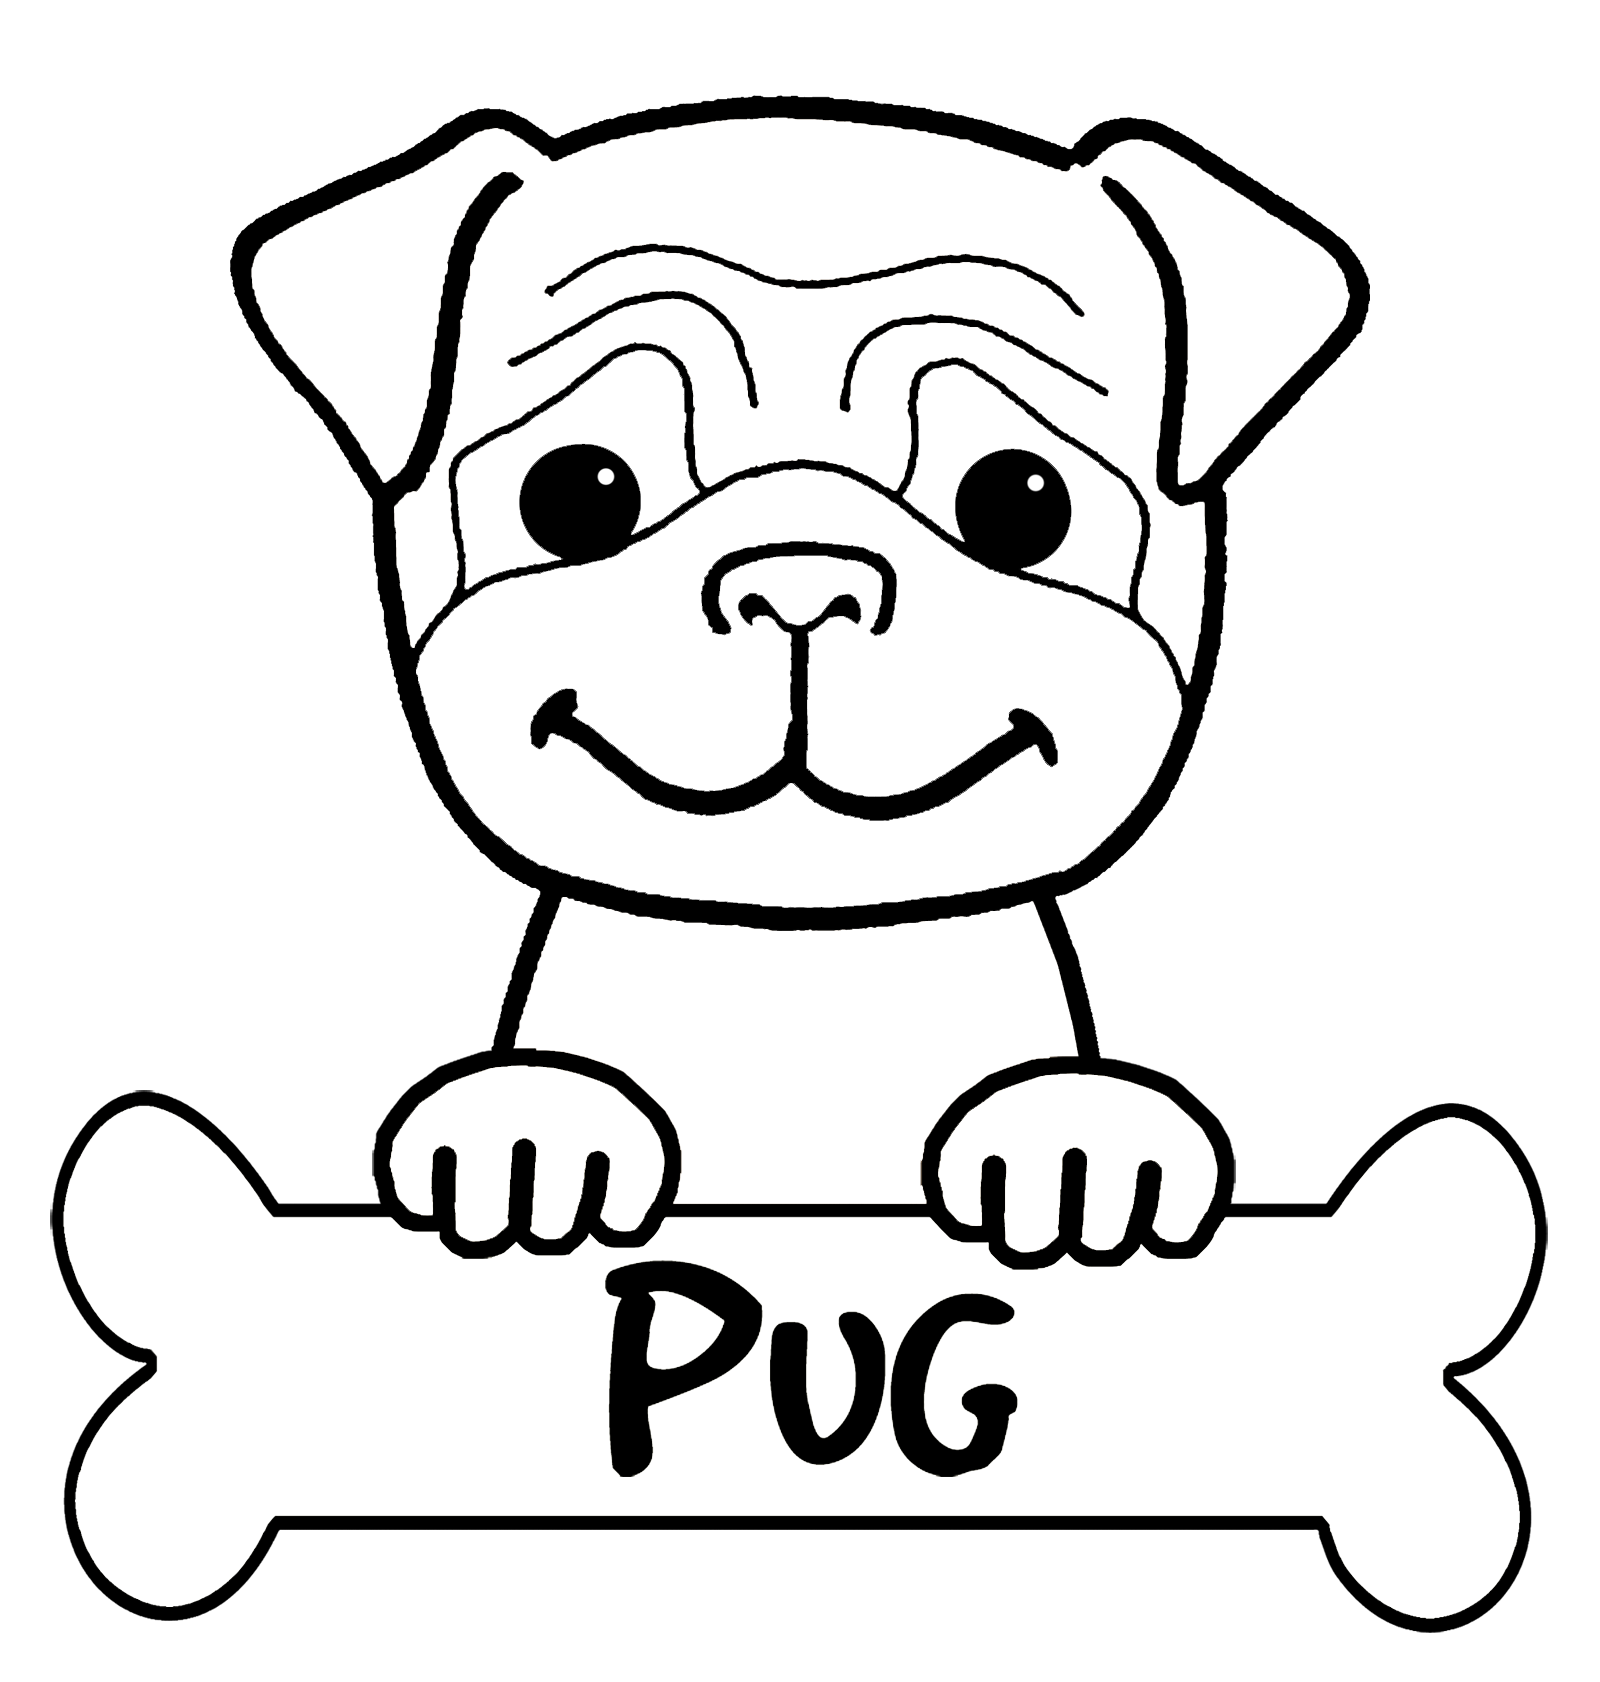 free printable coloring pages of dogs free book dog poodle dogs adult coloring pages coloring printable pages dogs of free